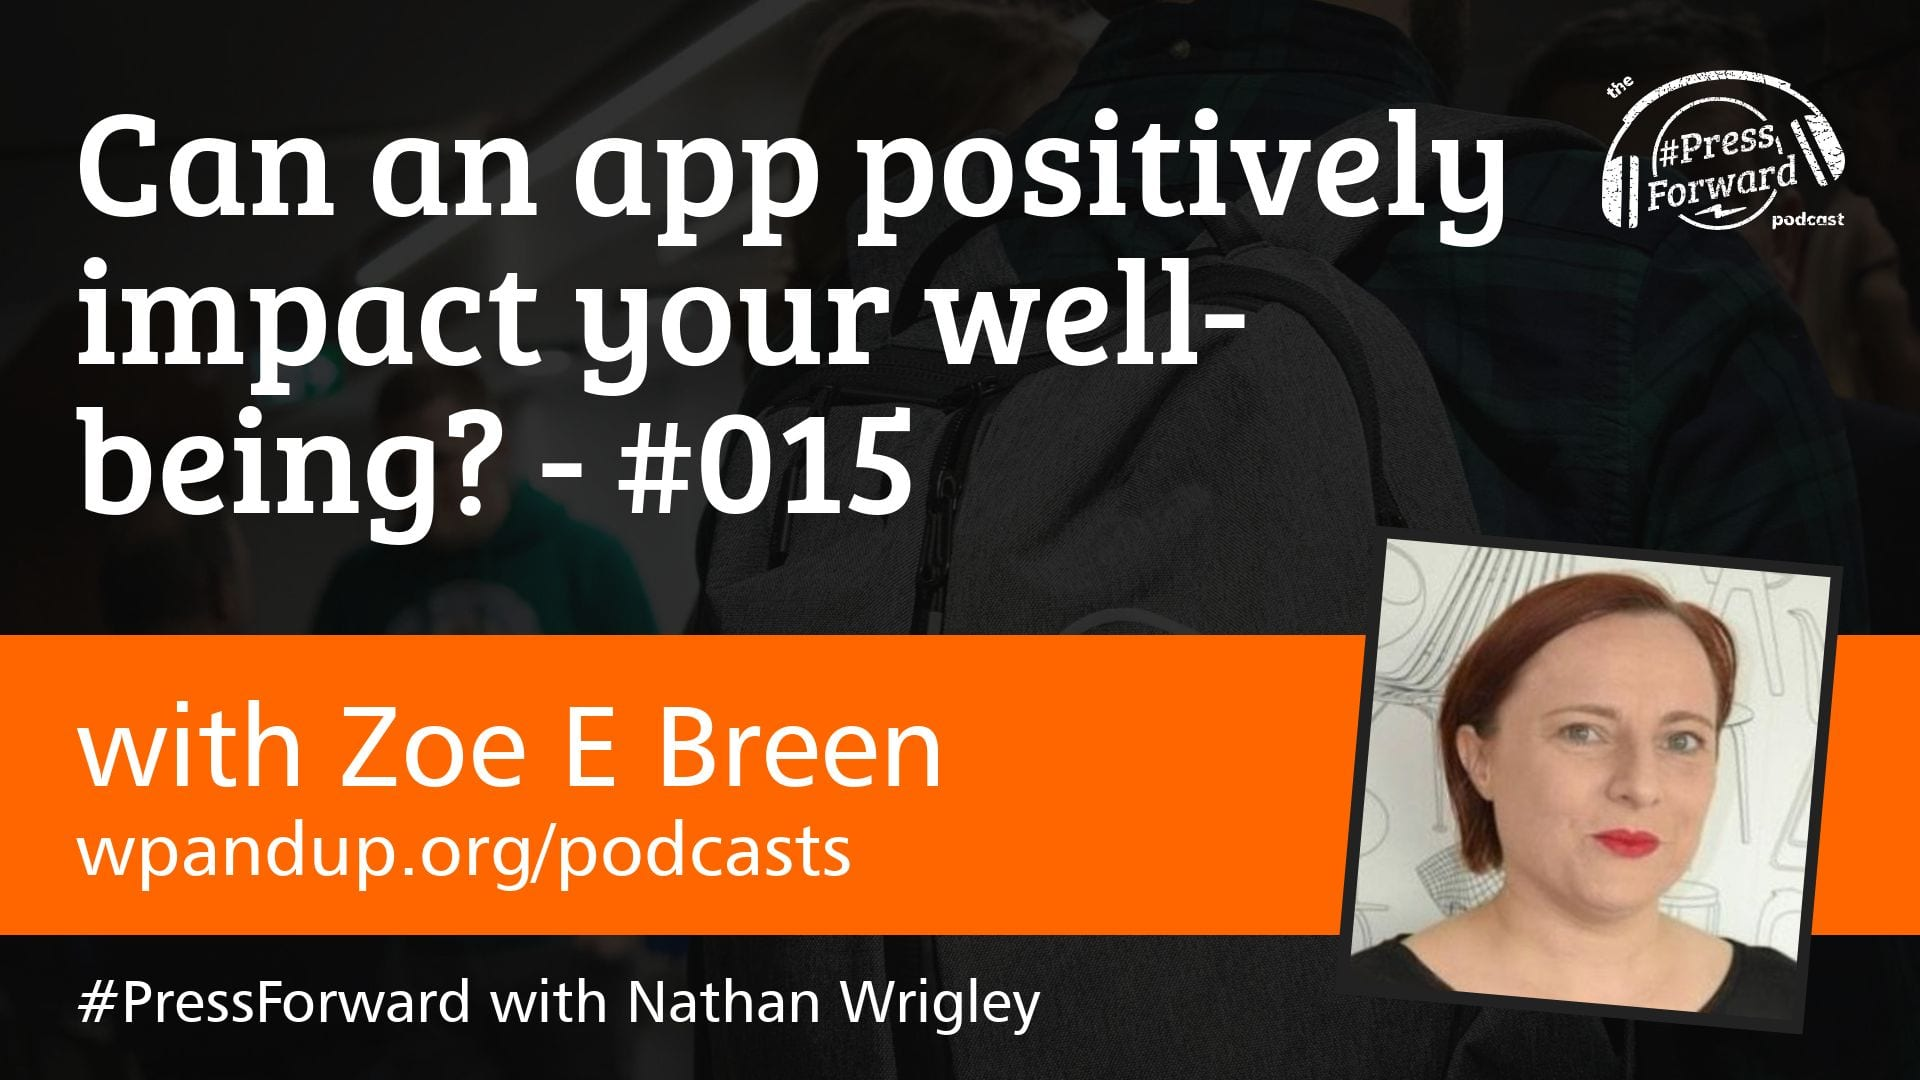 Can an app positively impact your well-being? - #015